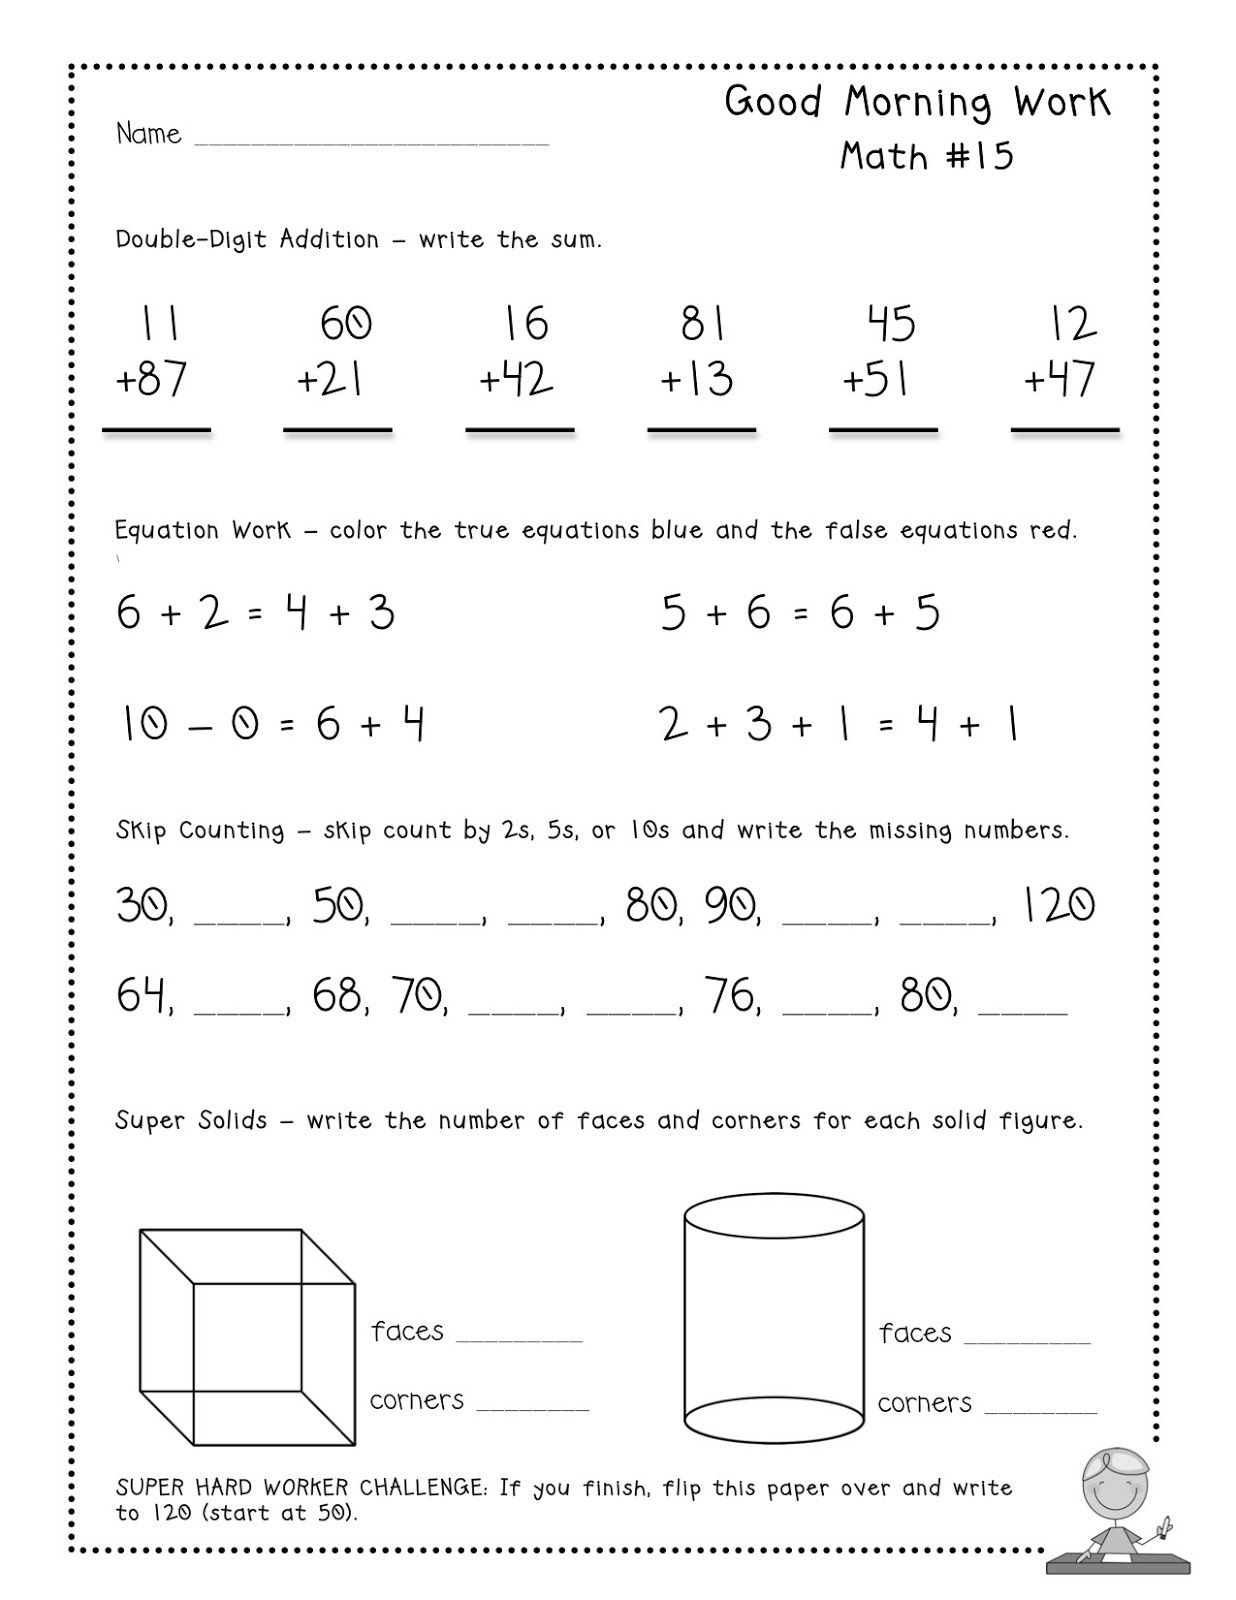 Worksheets Math Warm Up Worksheets free good morning work tester pages common core aligned daily math warm ups